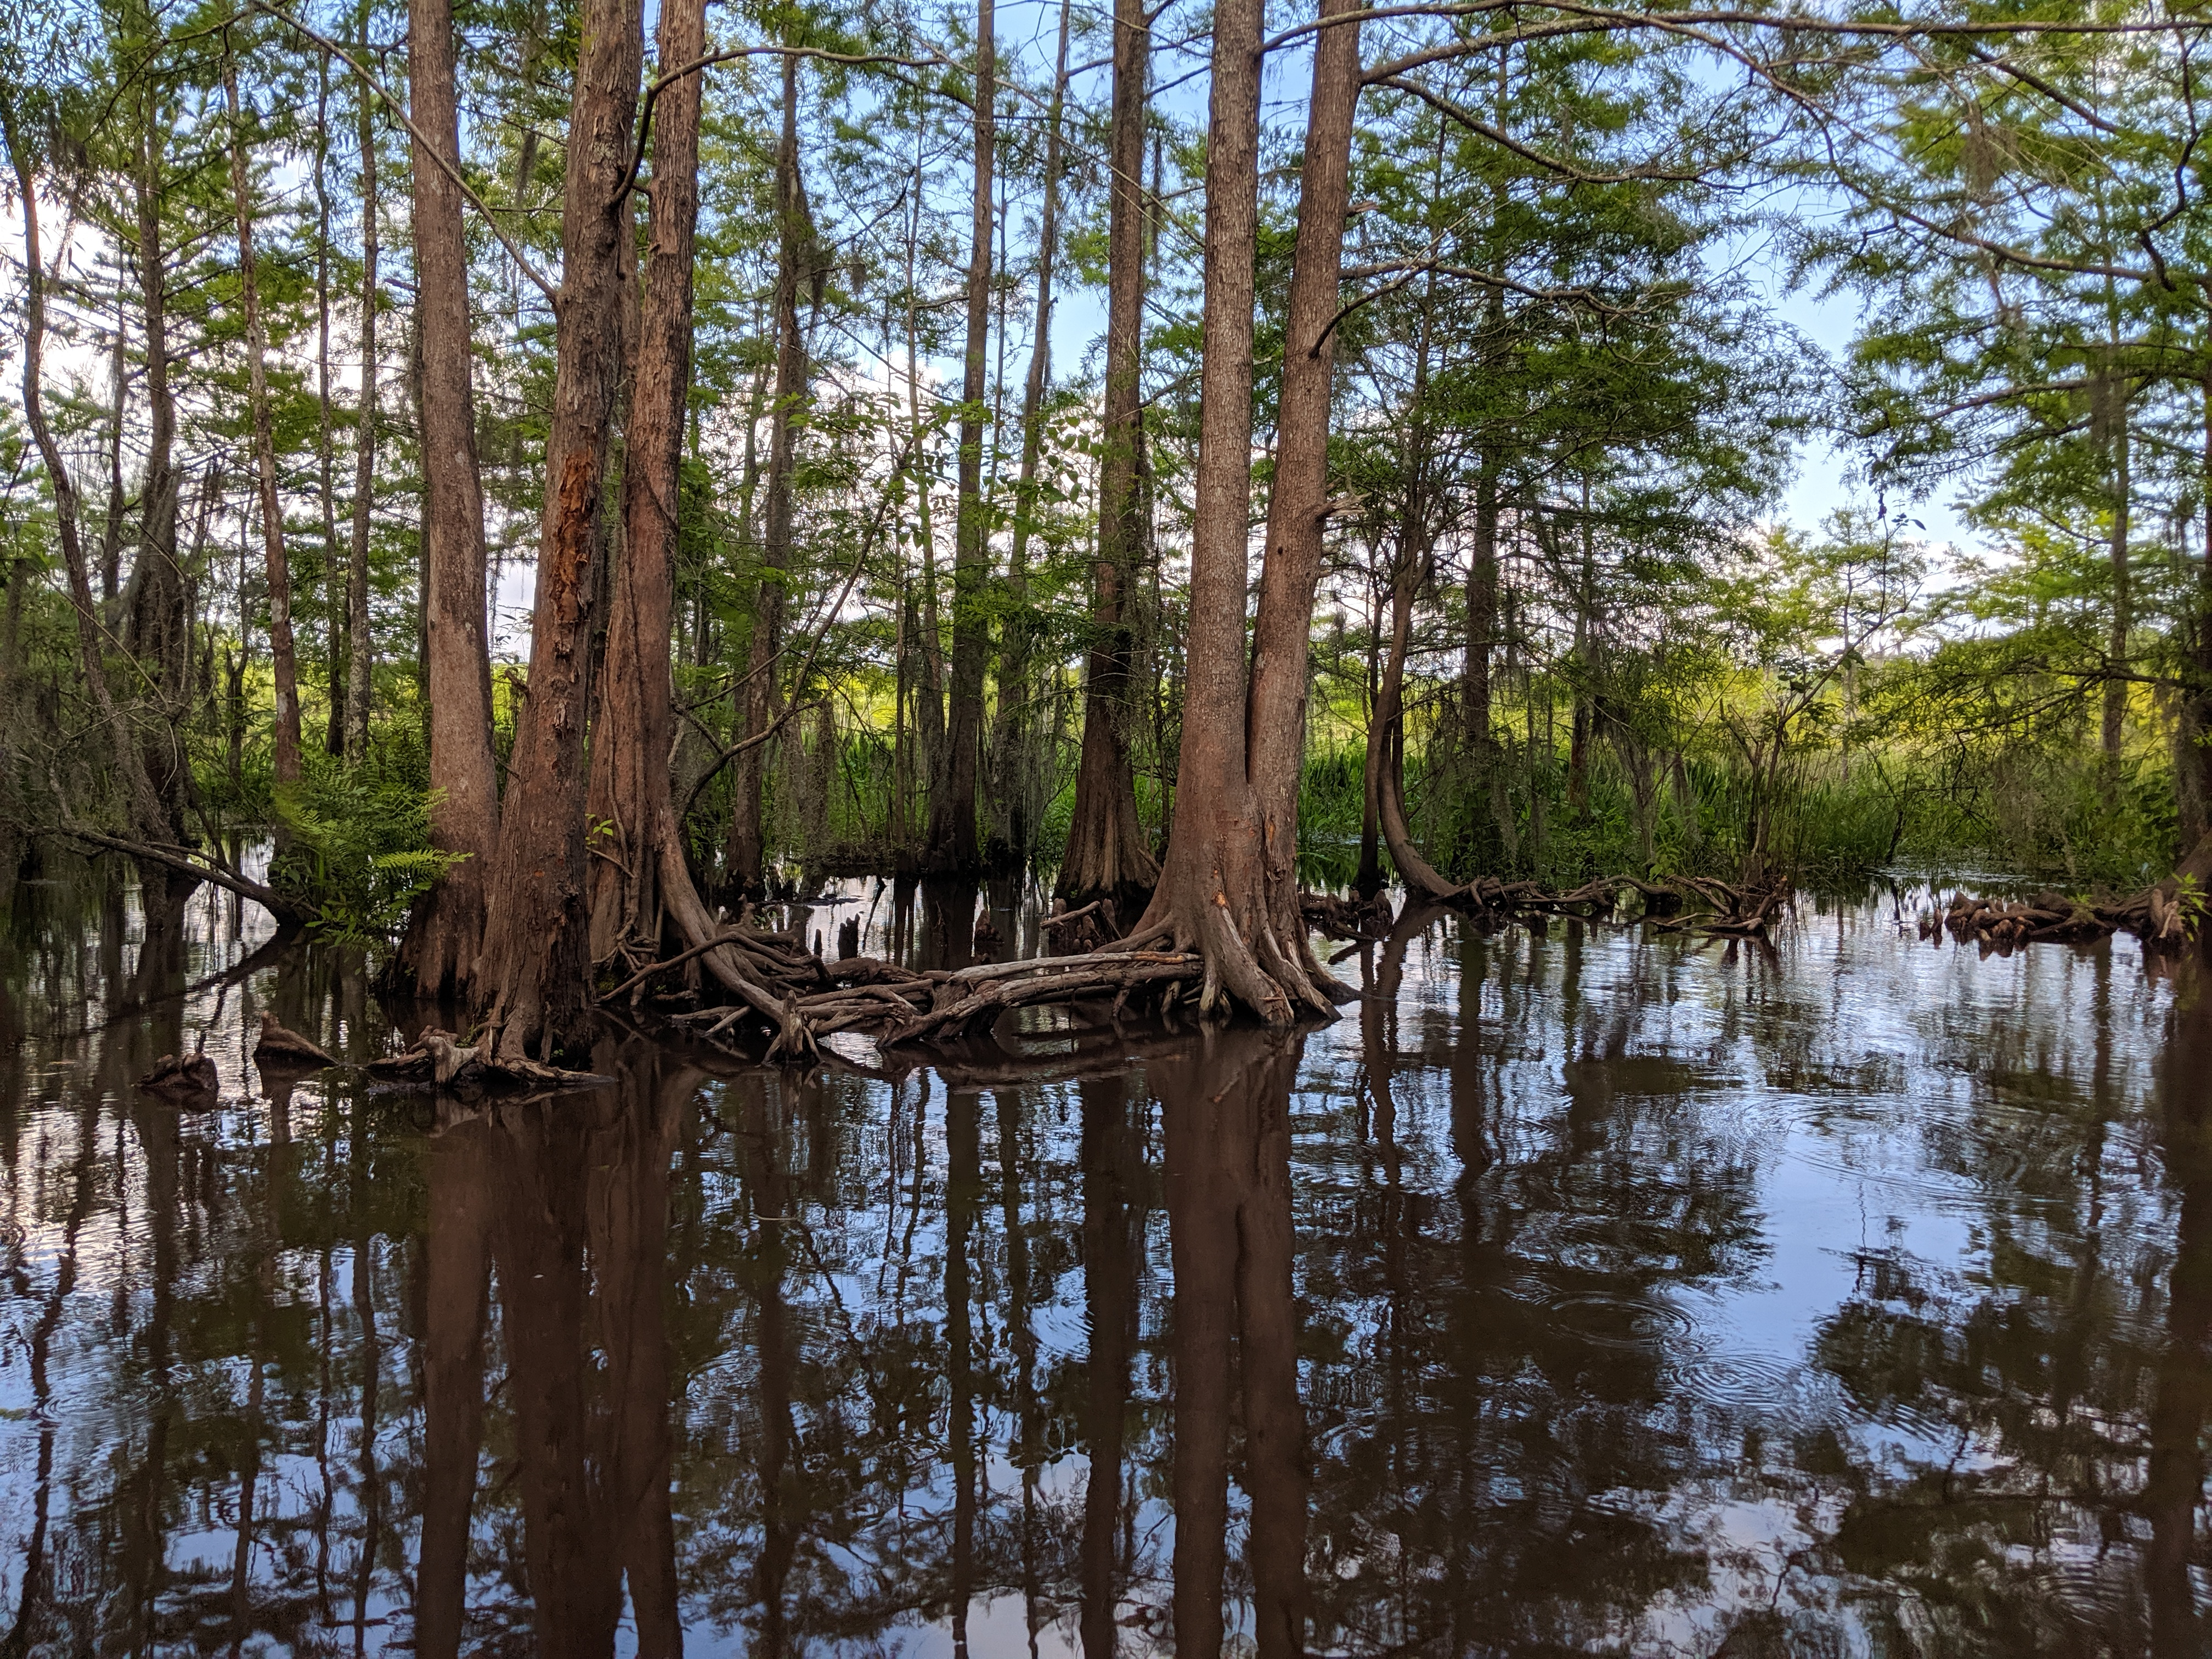 Mangrove trees reflected in dark water in a swamp